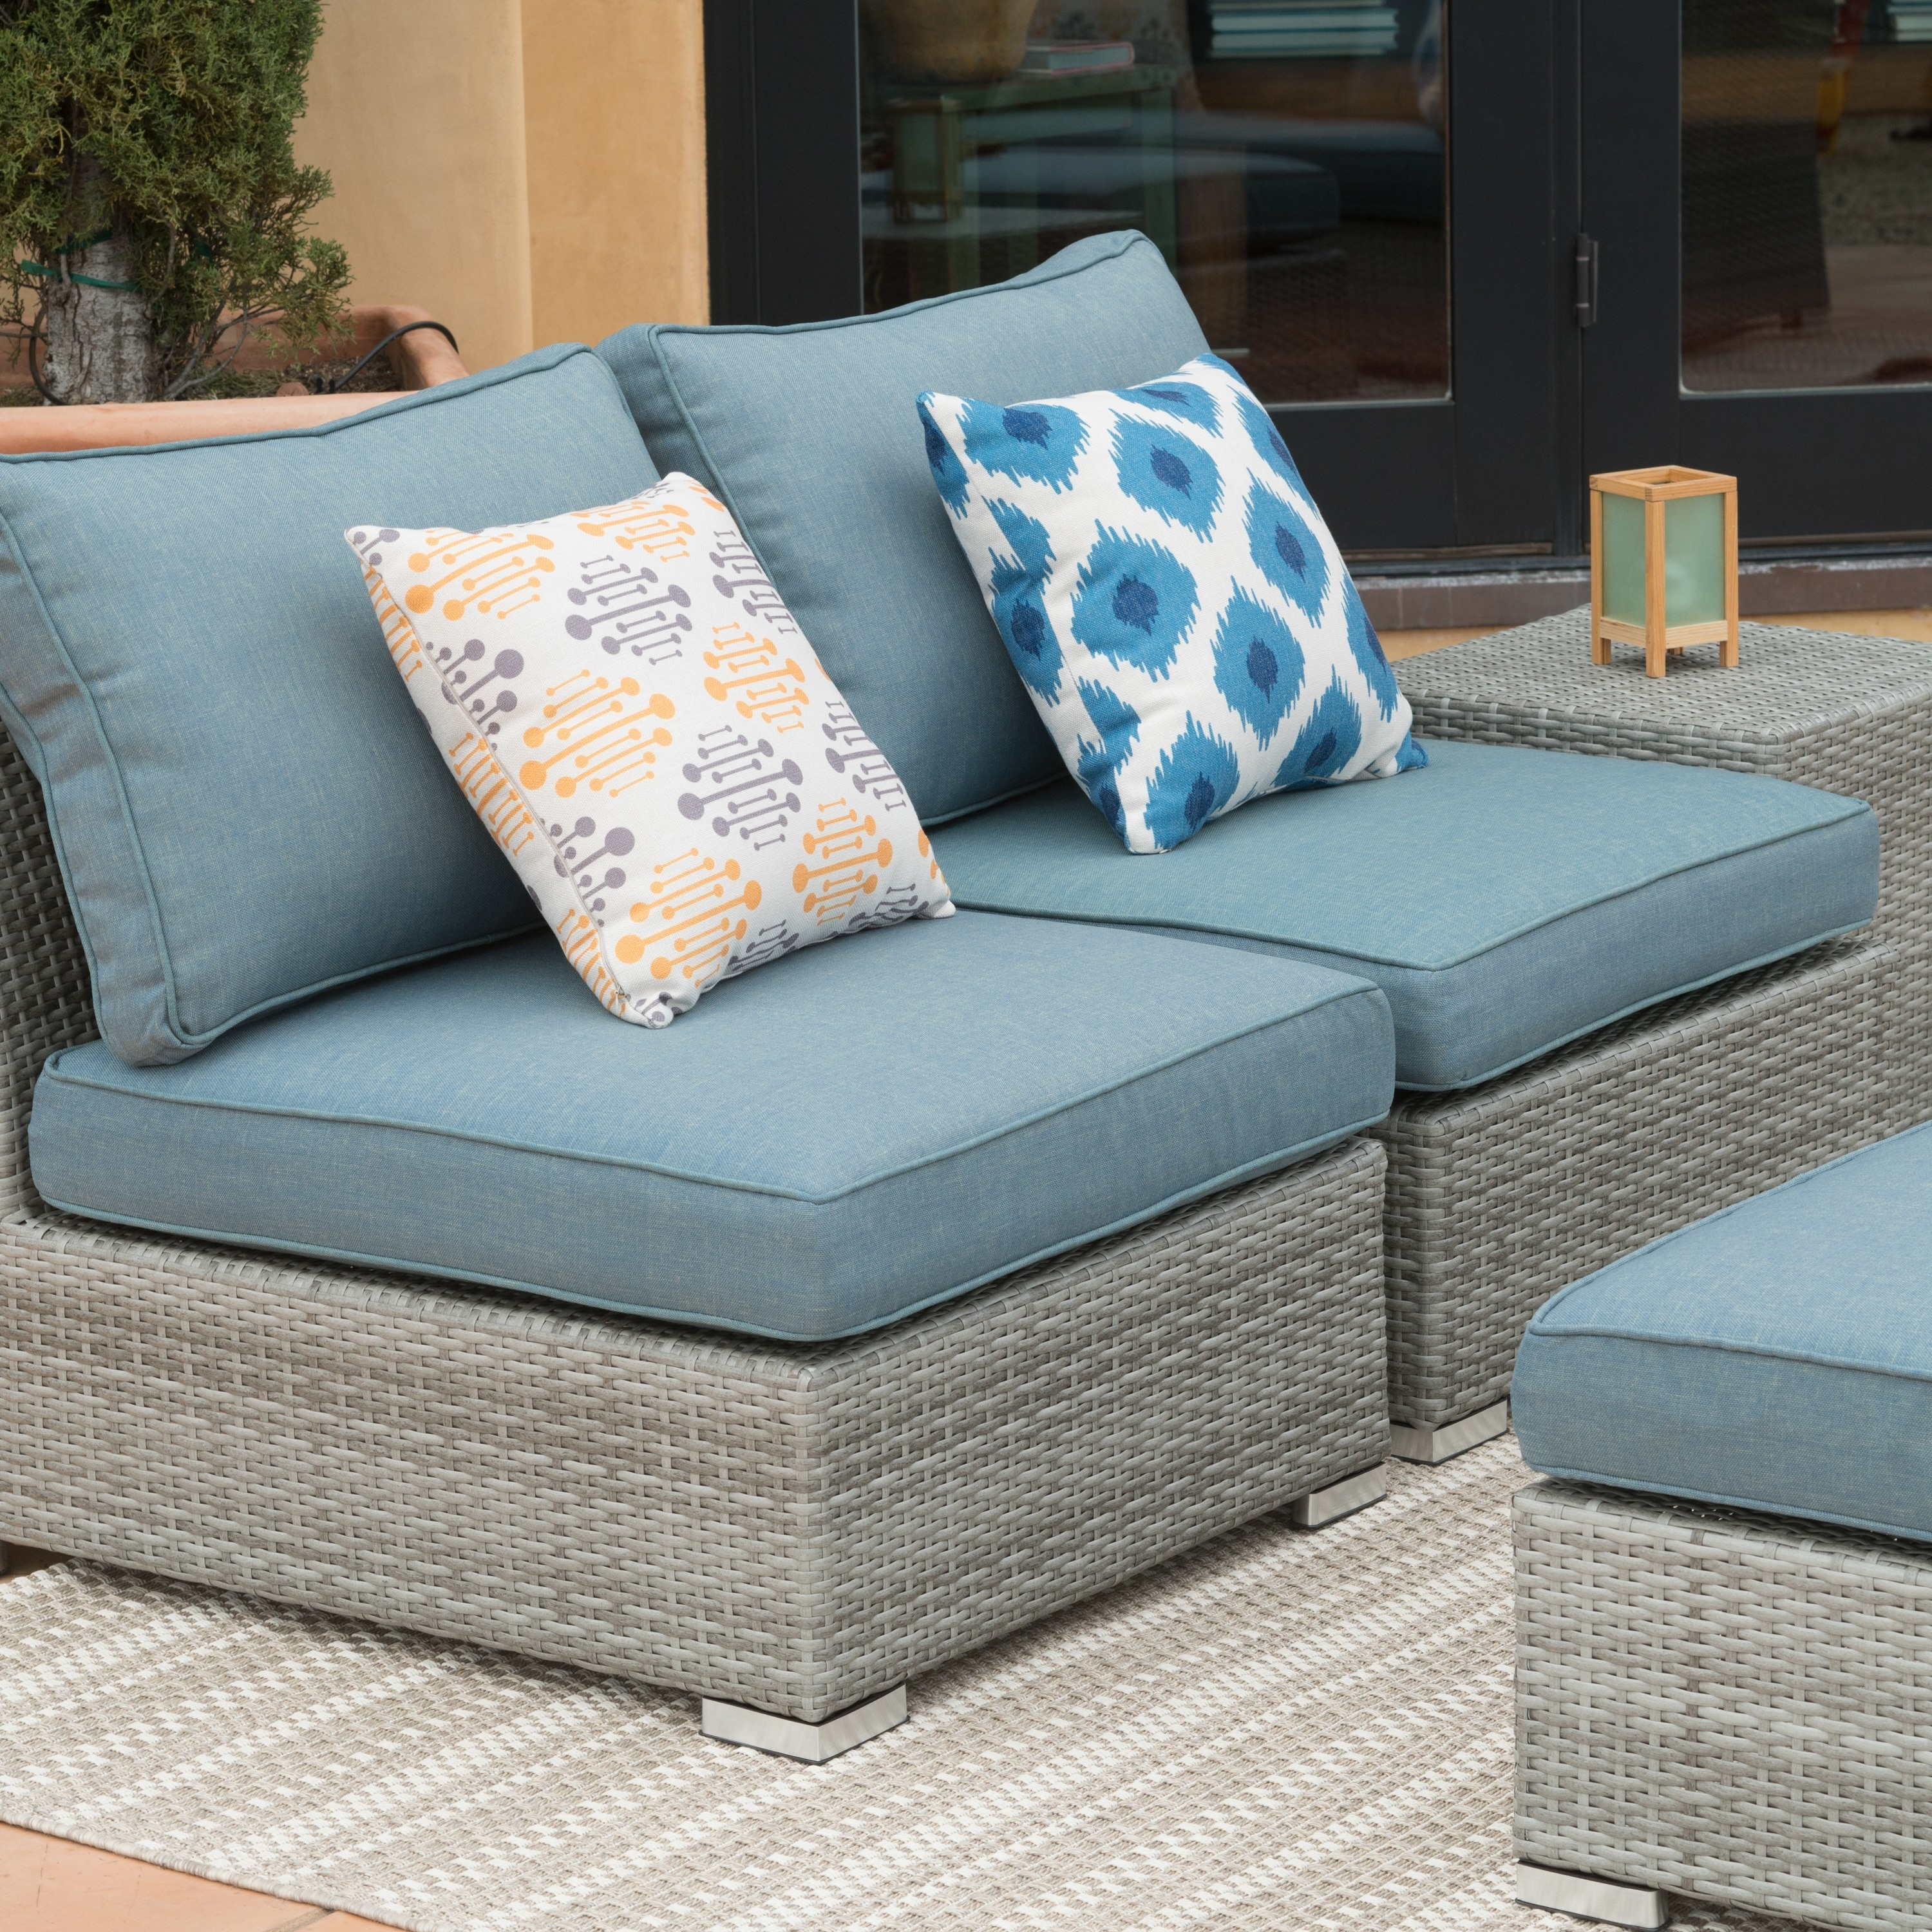 c furniture chairs outdoor houzz concept the scheme design patio of stools best inspirational table and